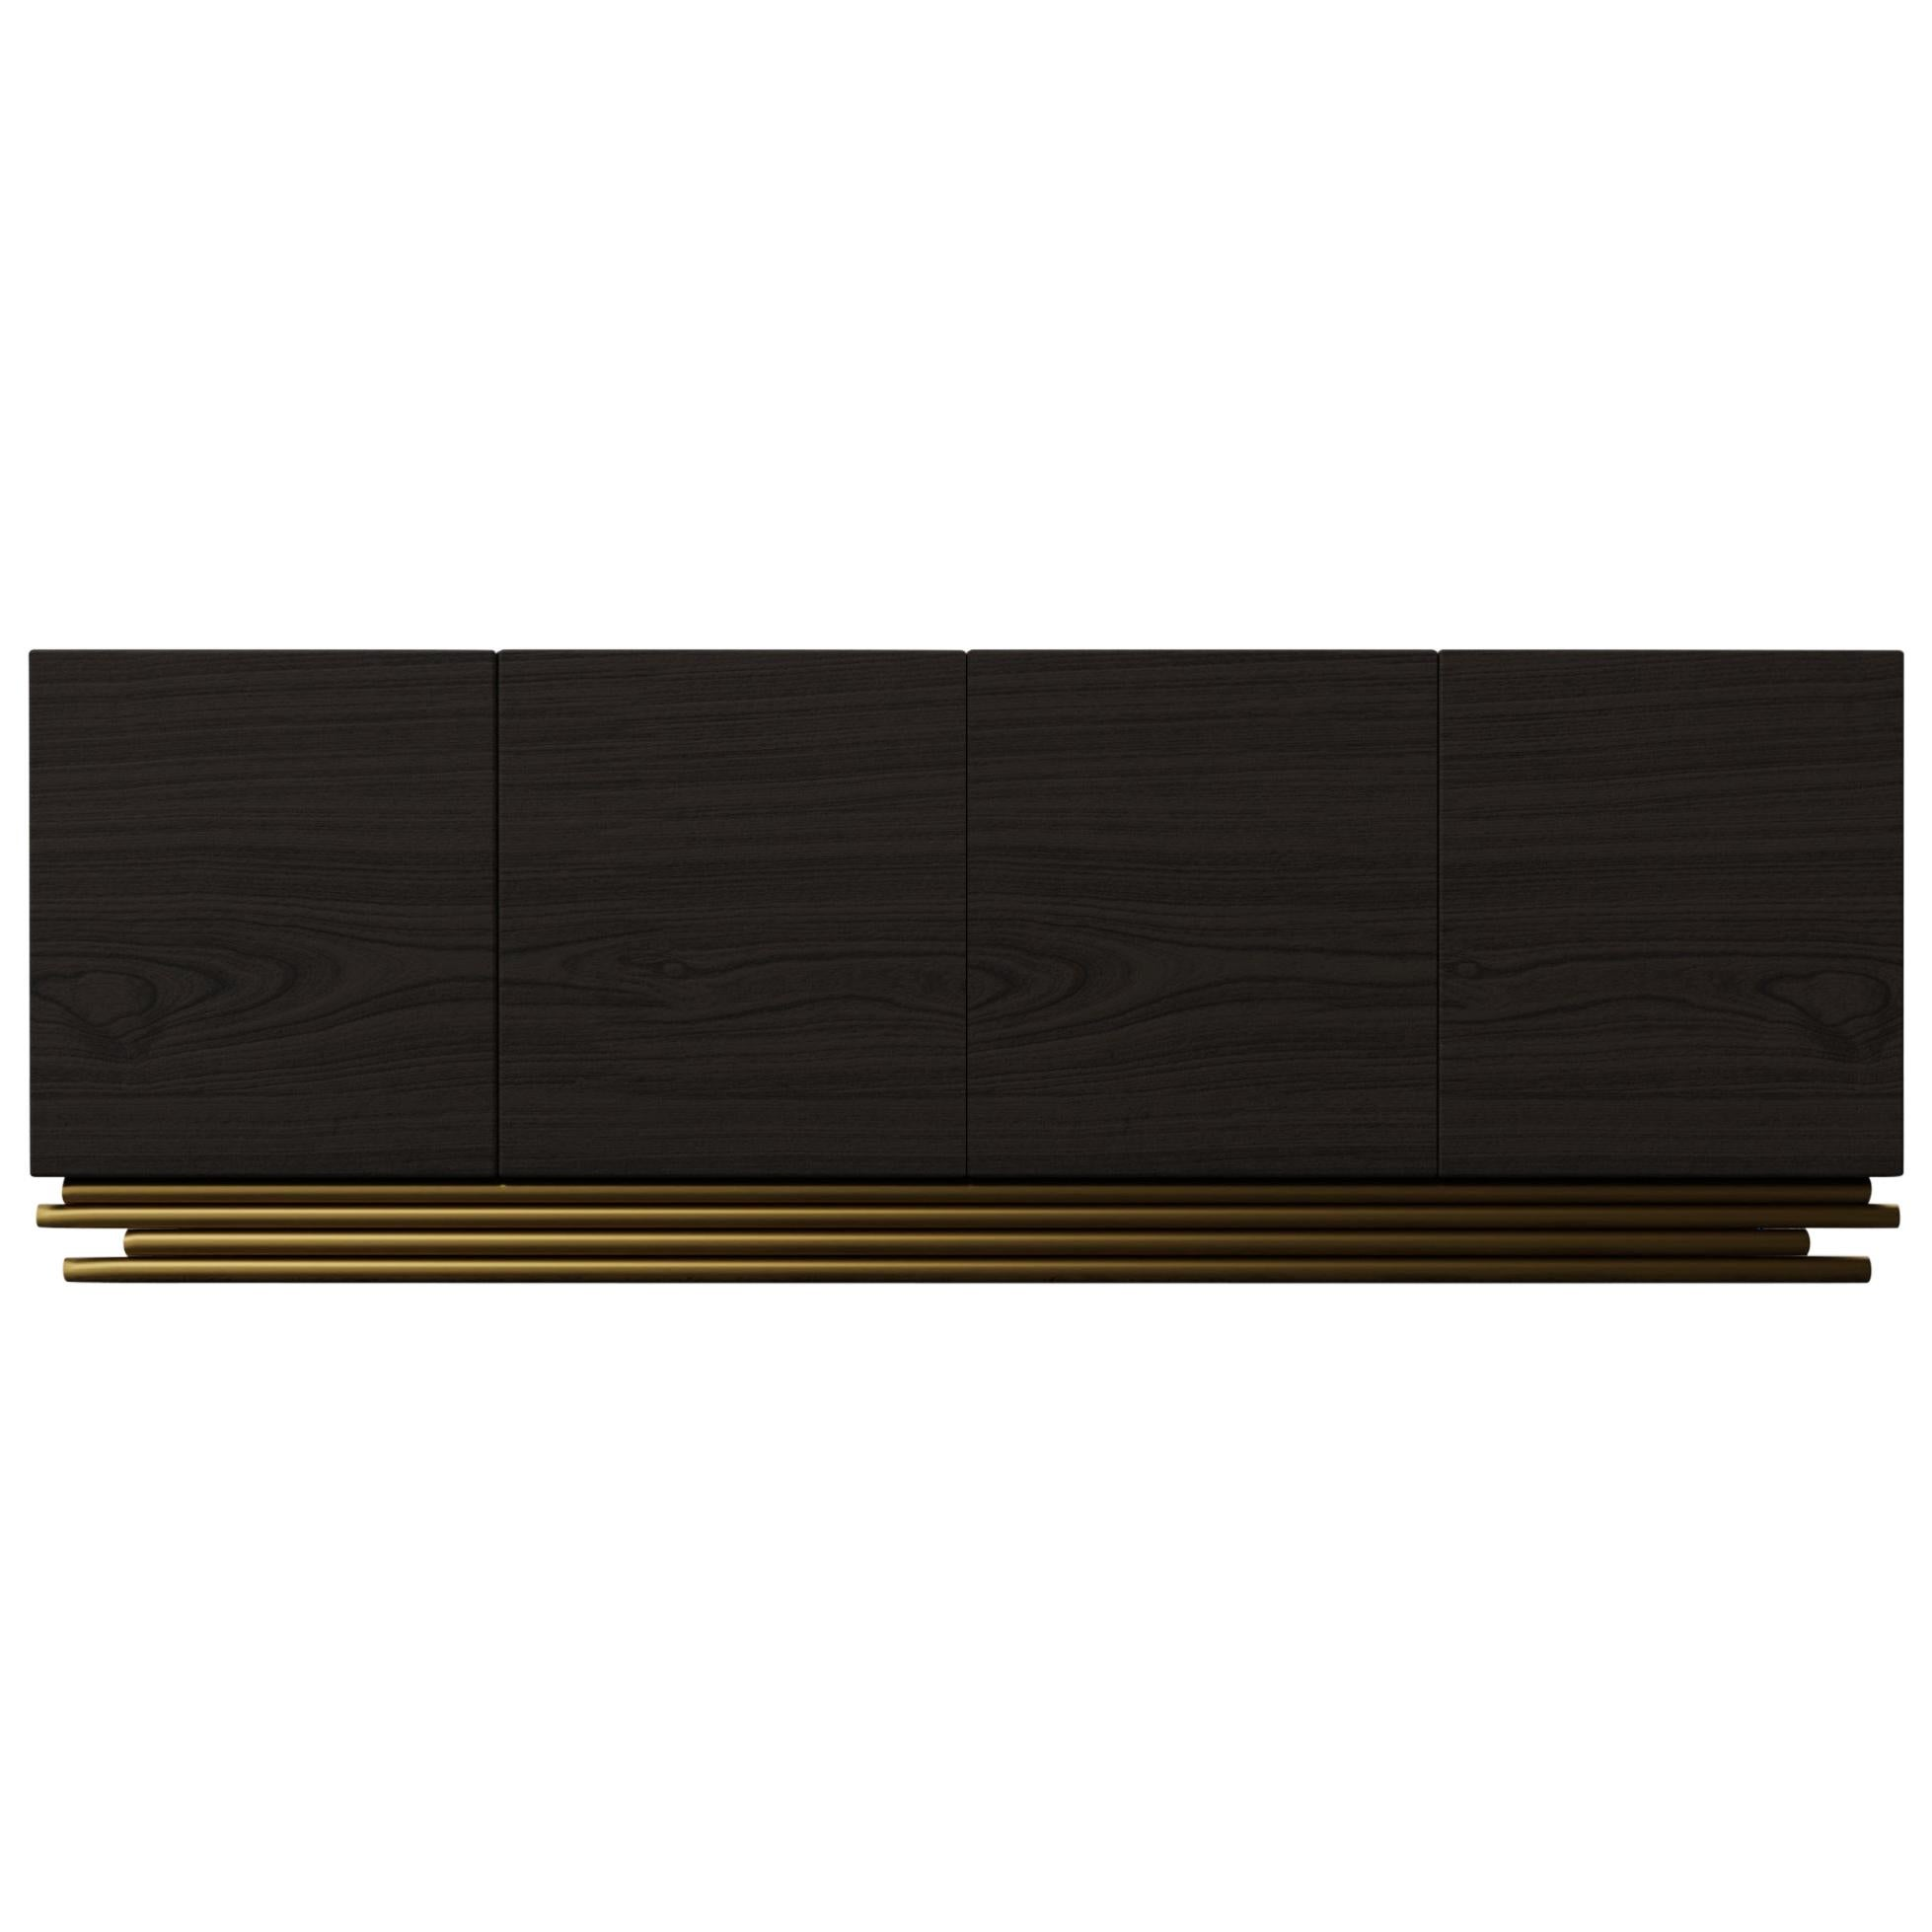 TRESTLES CREDENZA, Modern Cabinet with Metallic Lacquer Metal Base